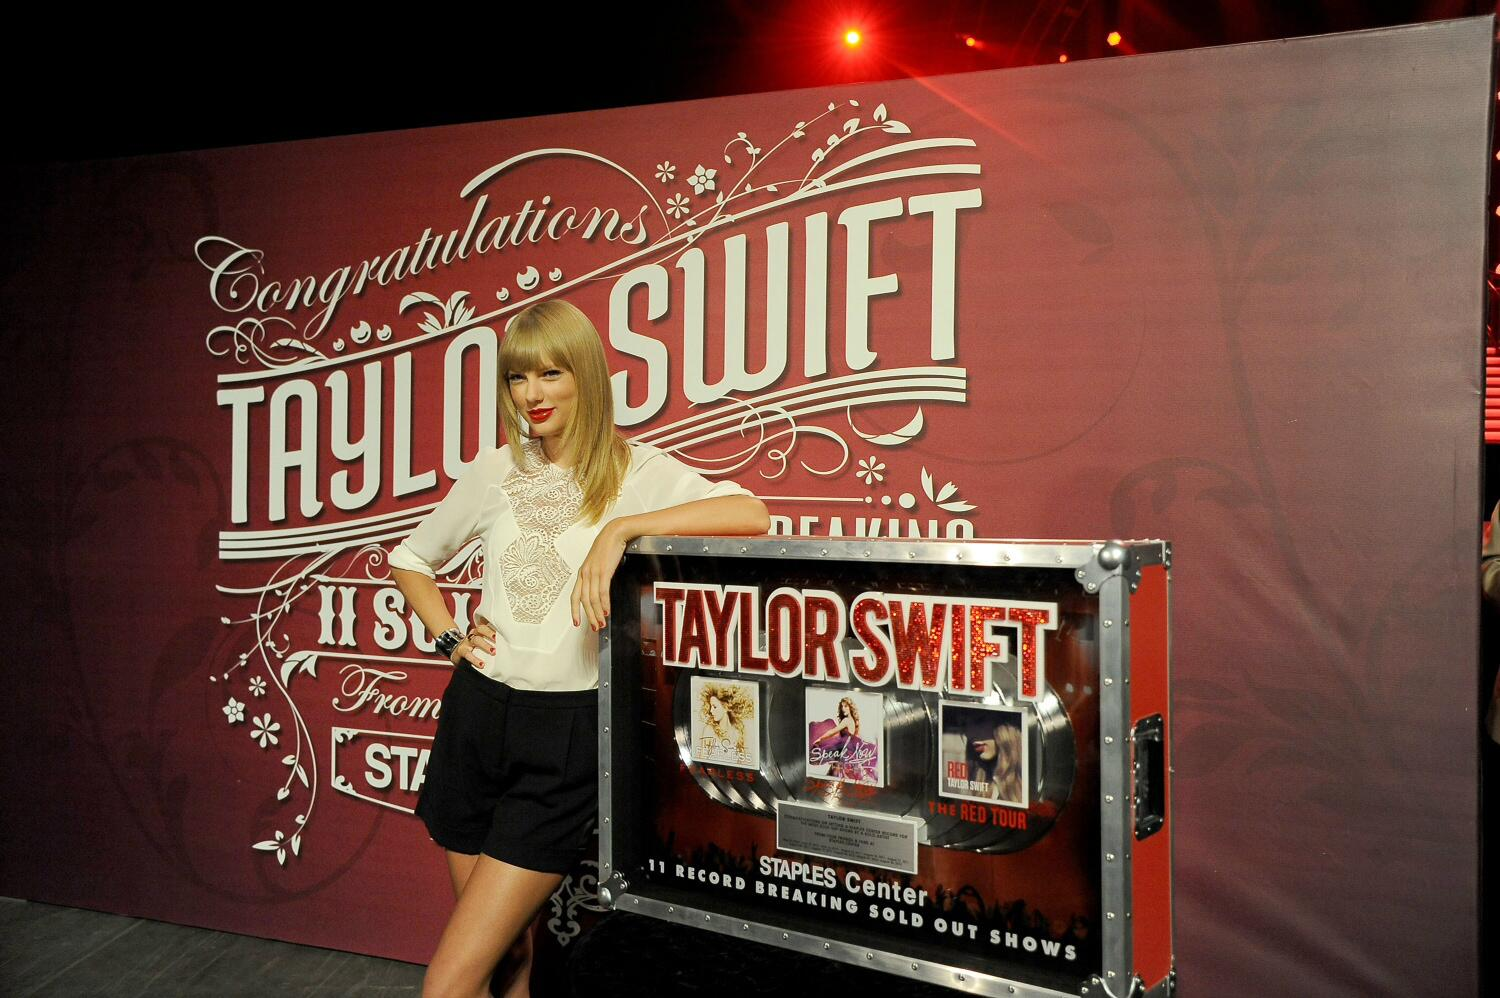 RT @BigMachine: Please join me in congratulating @taylorswift13 on 11 SOLD OUT shows at the @STAPLESCenter in Los Angeles! #RedTour http://t.co/S2r85xpzKR